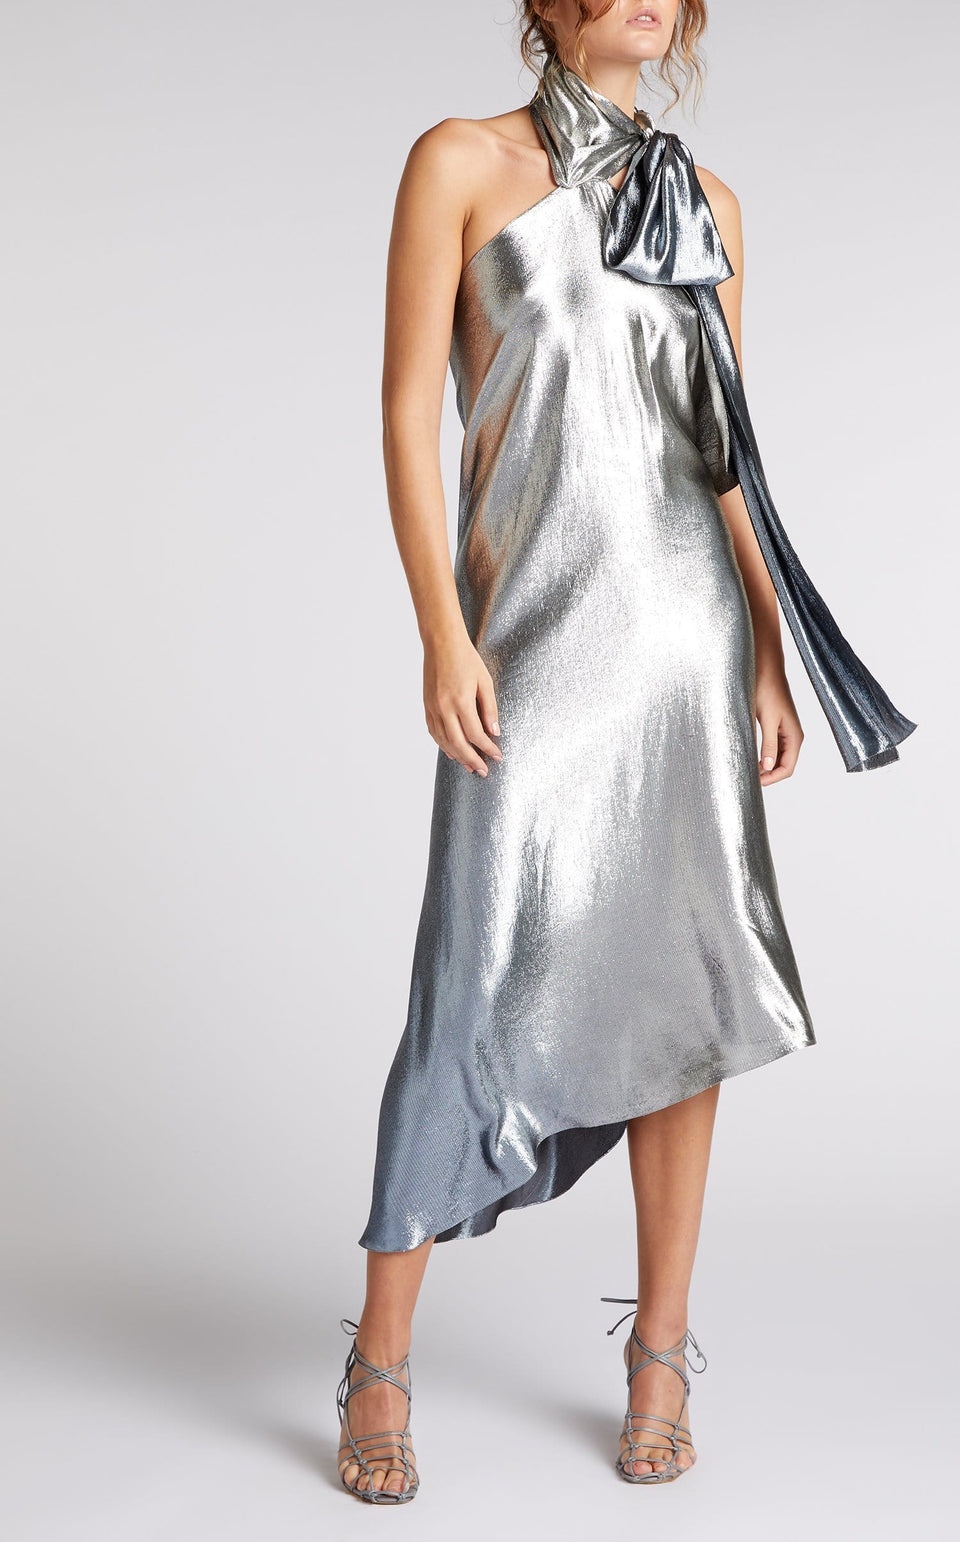 Copernicus Dress